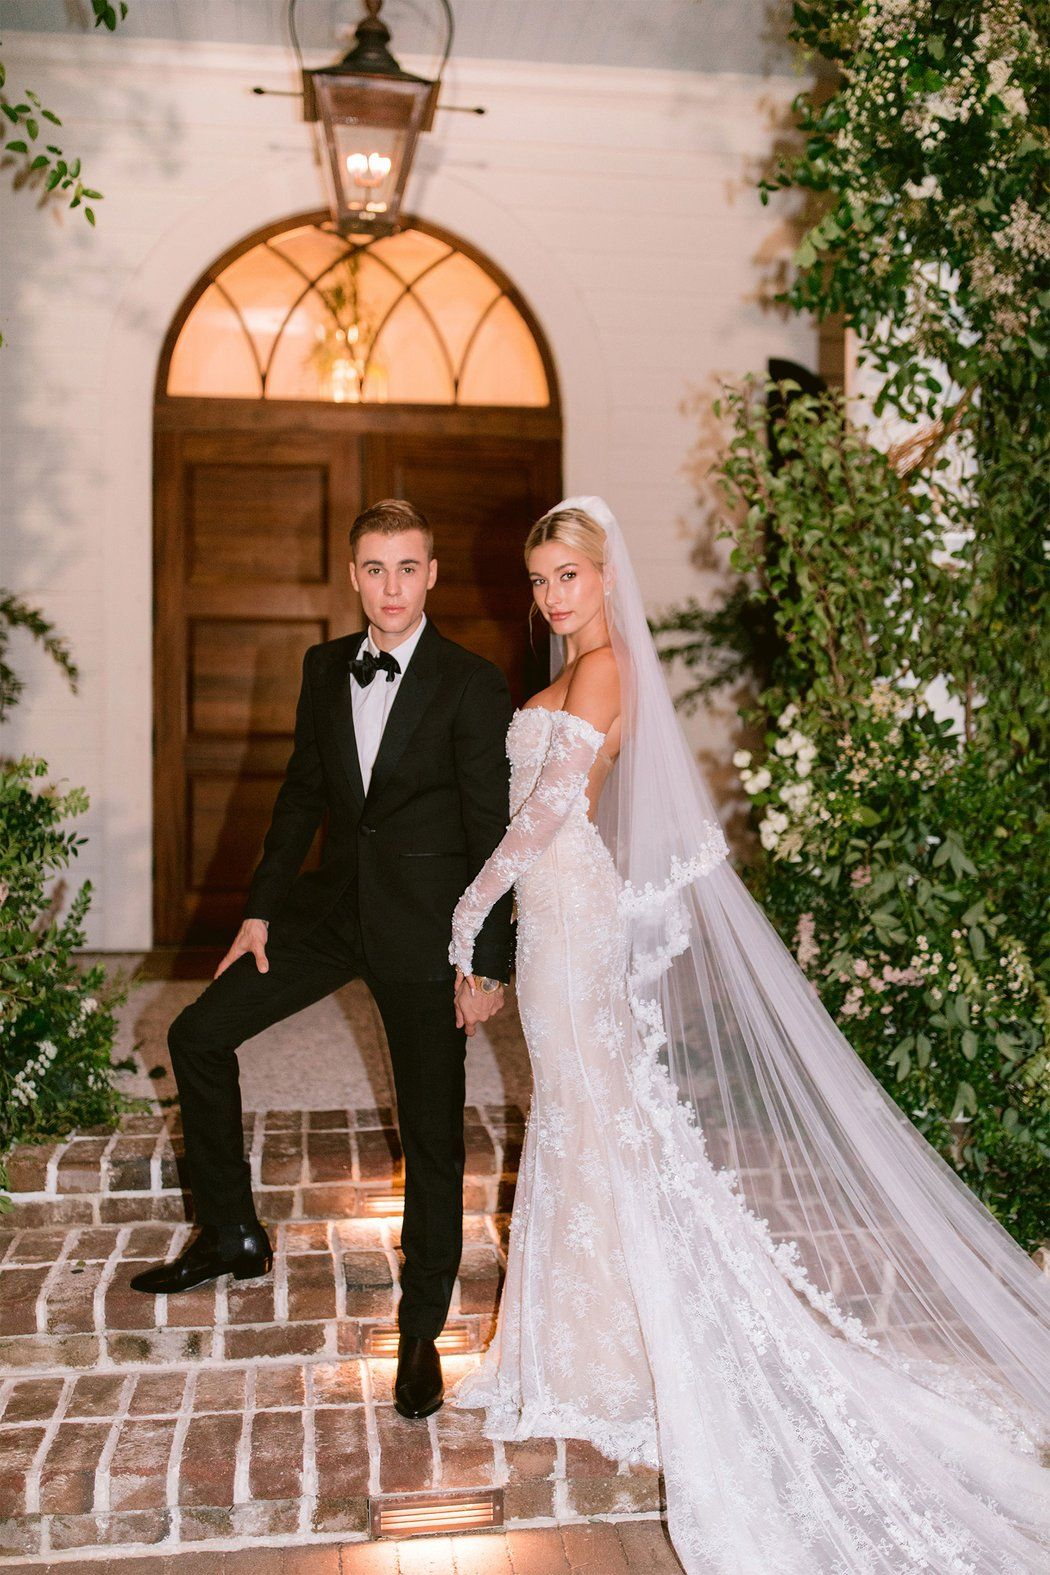 Take A Look Inside Hailey Baldwin And Justin Bieber S Whimsical Wedding Reception Celebrity Wedding Dresses Celebrity Weddings Wedding Dresses